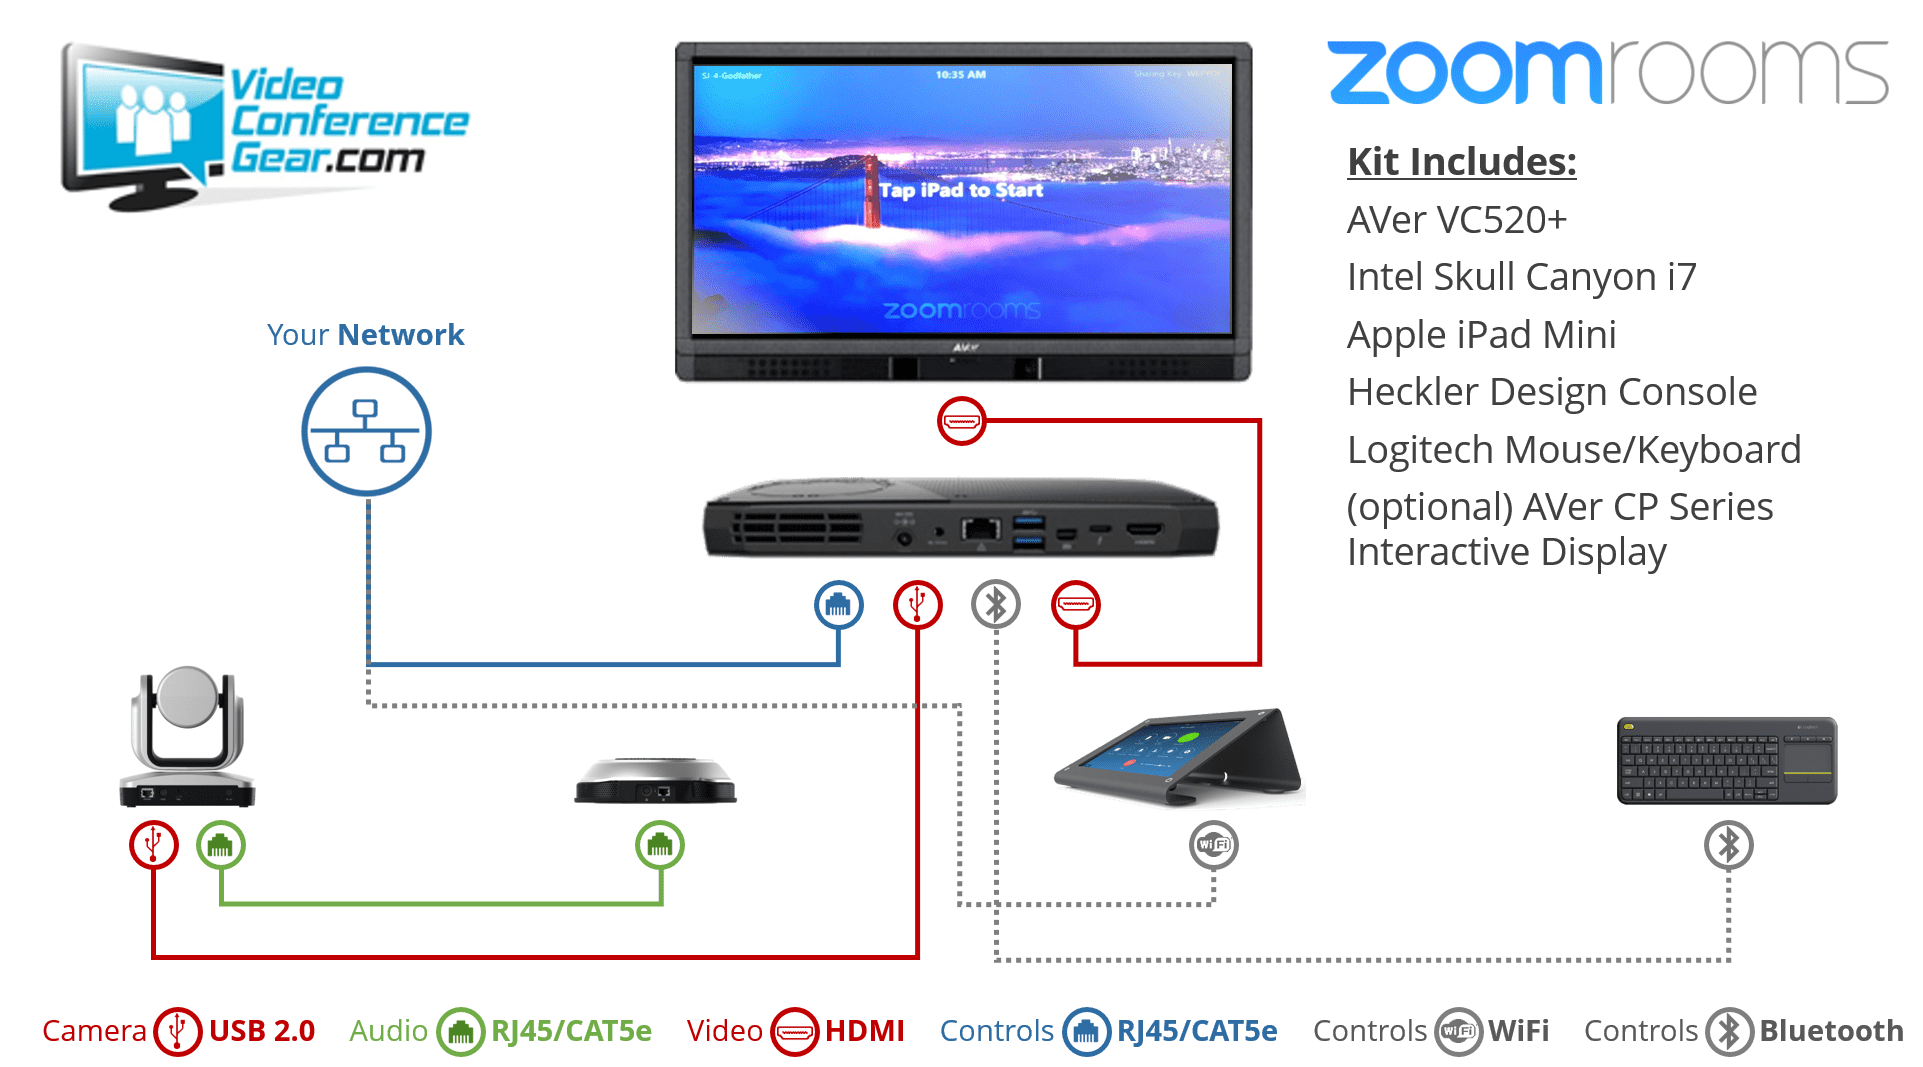 Zoom Rooms AVer VC520+